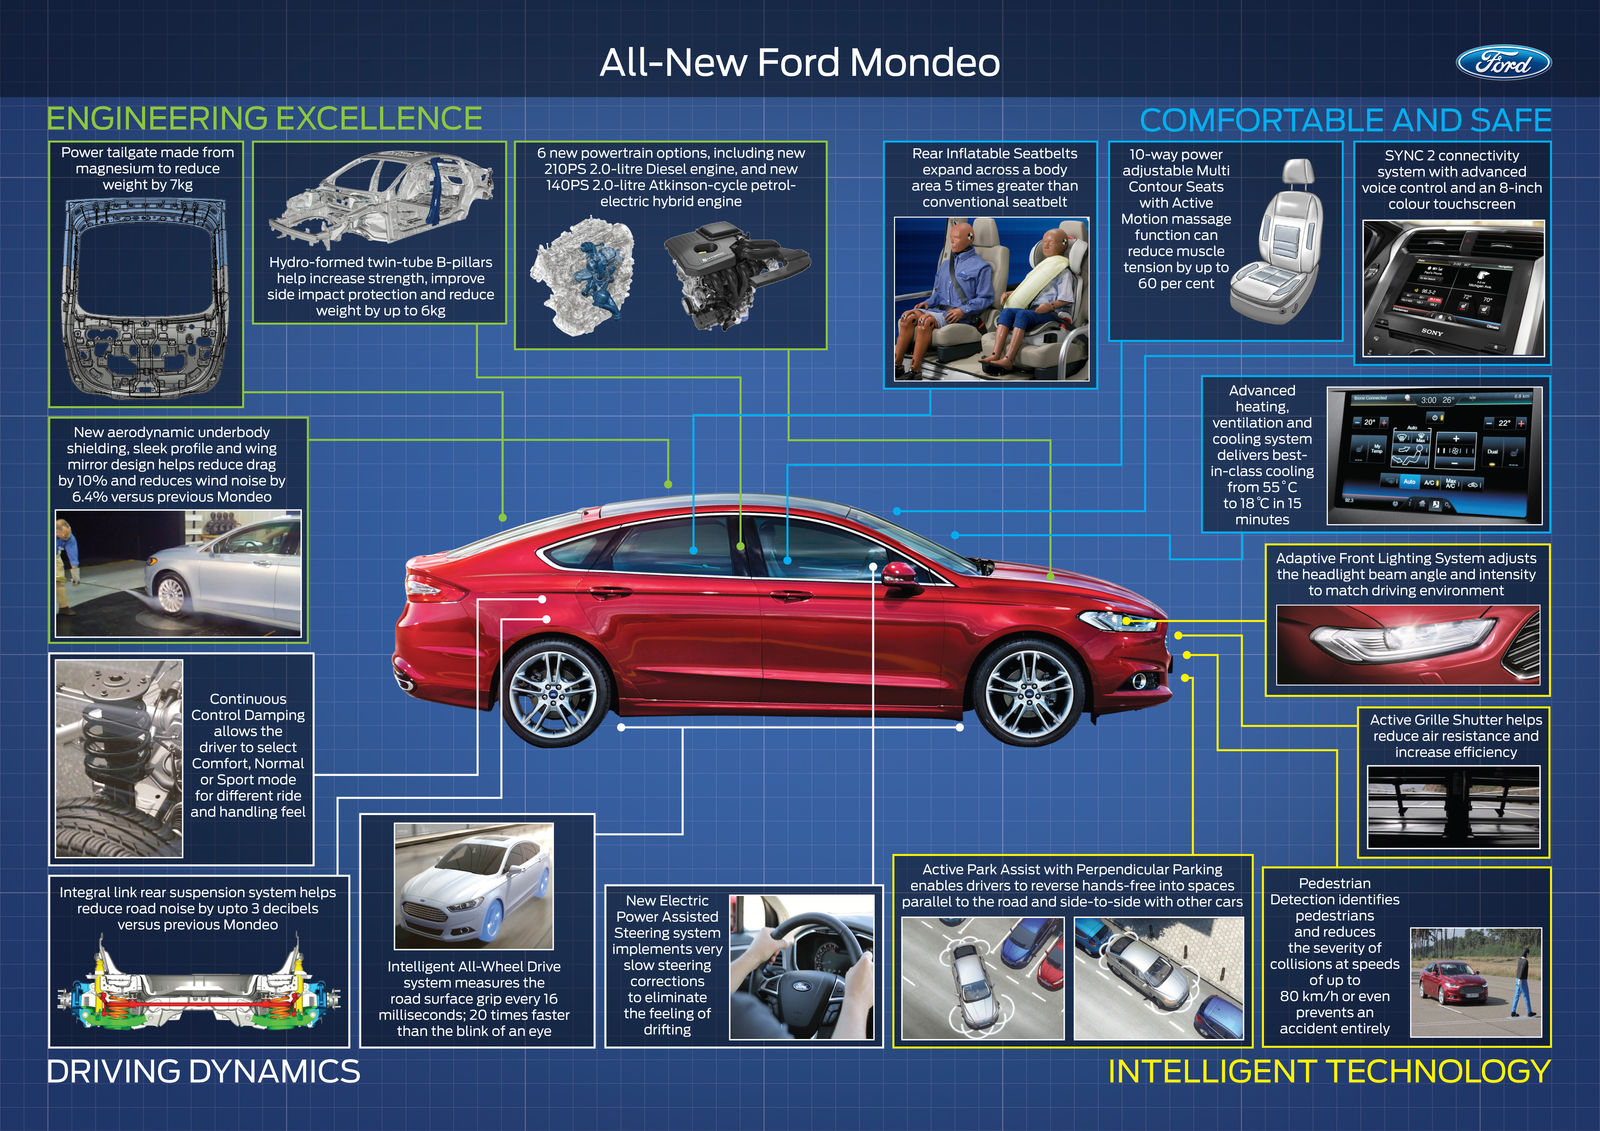 How A Car Engine Works likewise Ferrari Ft12 Spider Concept further trashed together with Stock Photo Green Earth Image28602720 besides Bosch Elektroauto Batterie Der Zukunft. on electric car infographic